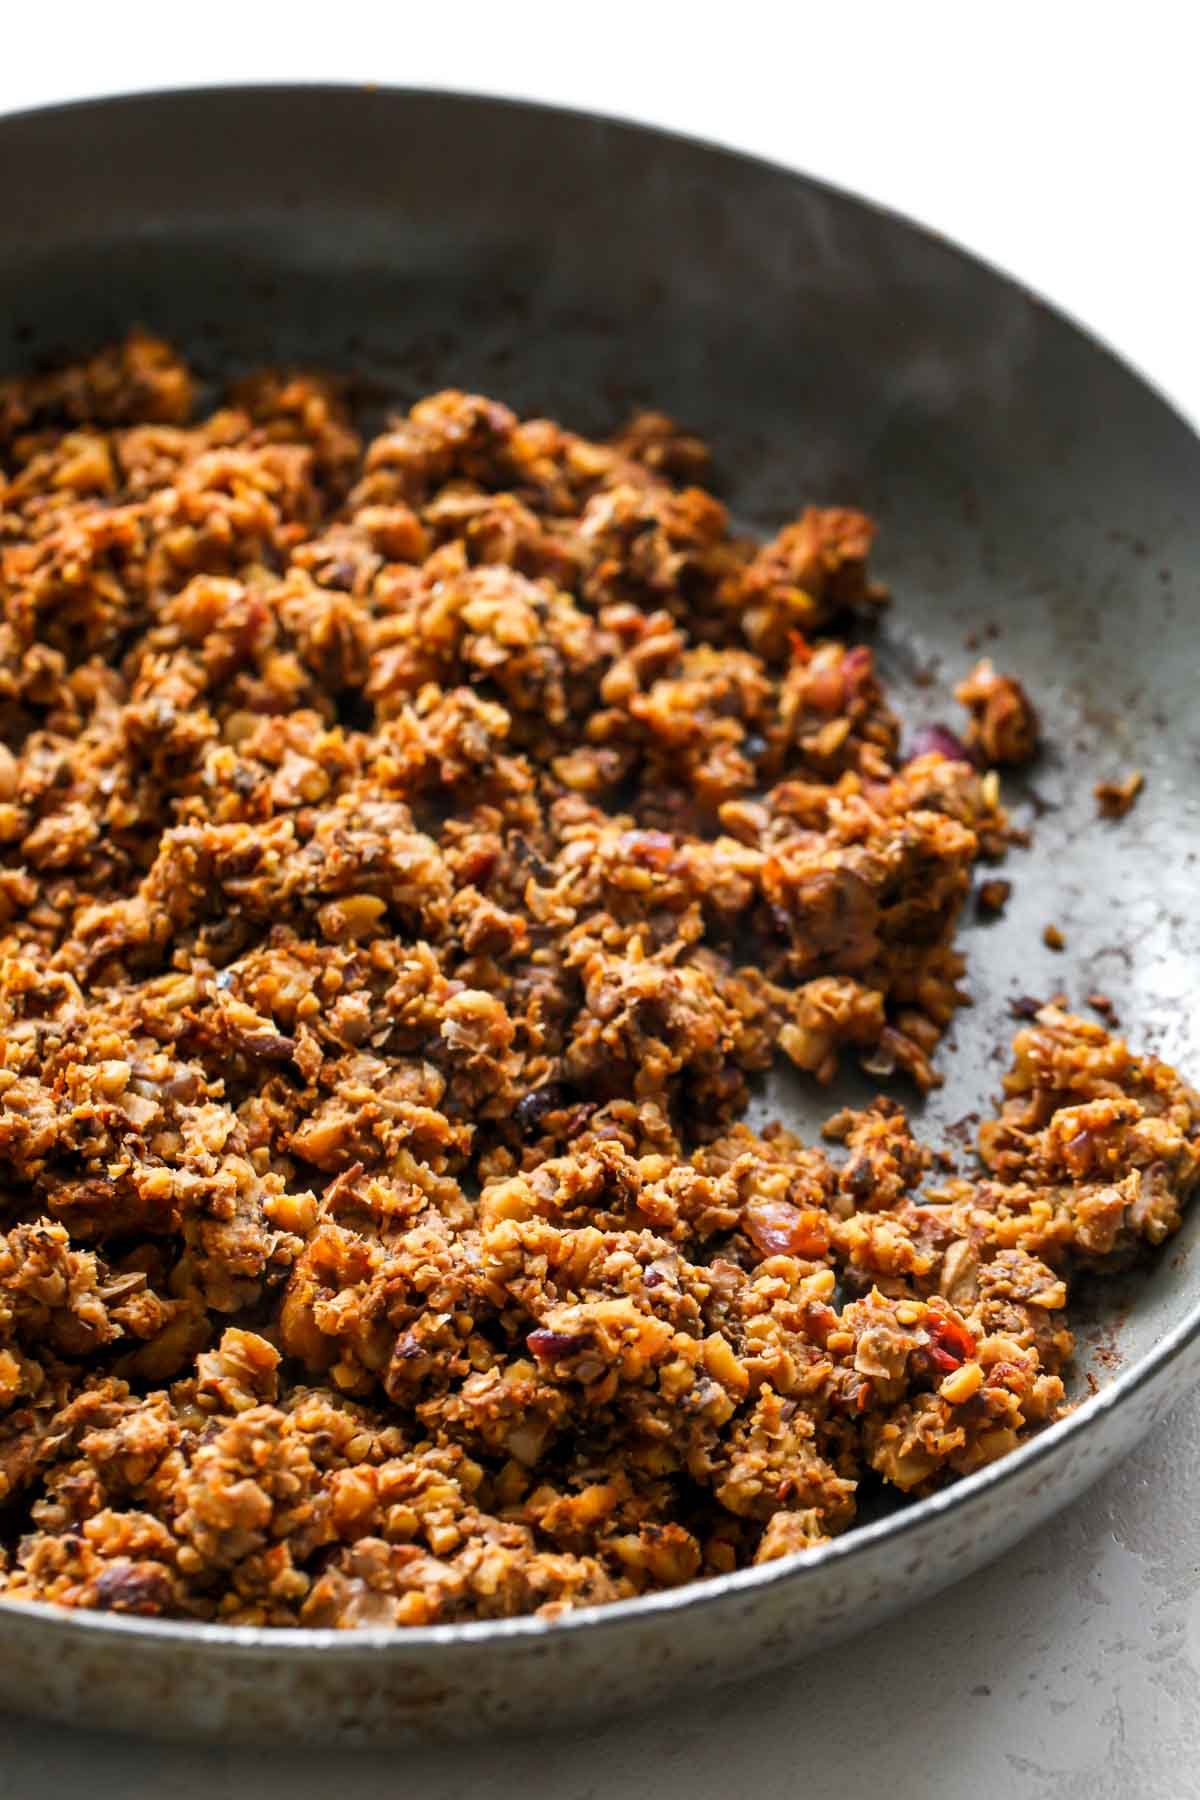 Cooked vegan chorizo in a skillet